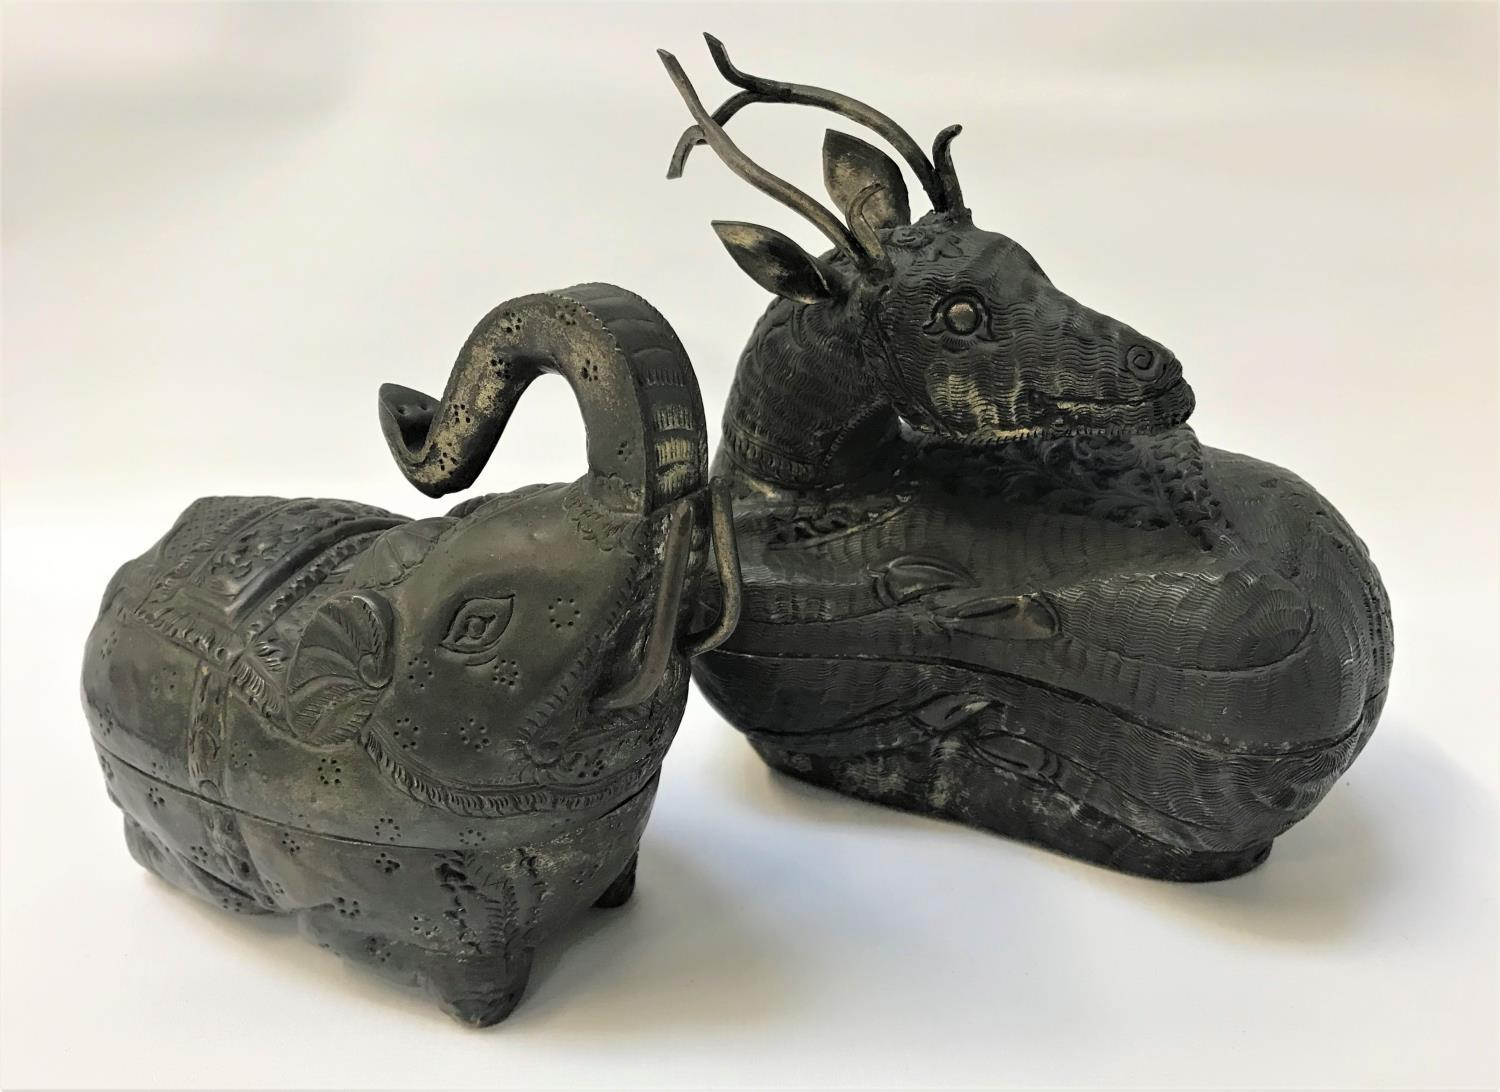 Lot 291 - TWO INDIAN BEETLE NUT BOXES in white metal, one depicting a recumbent deer, 17cm long; the other